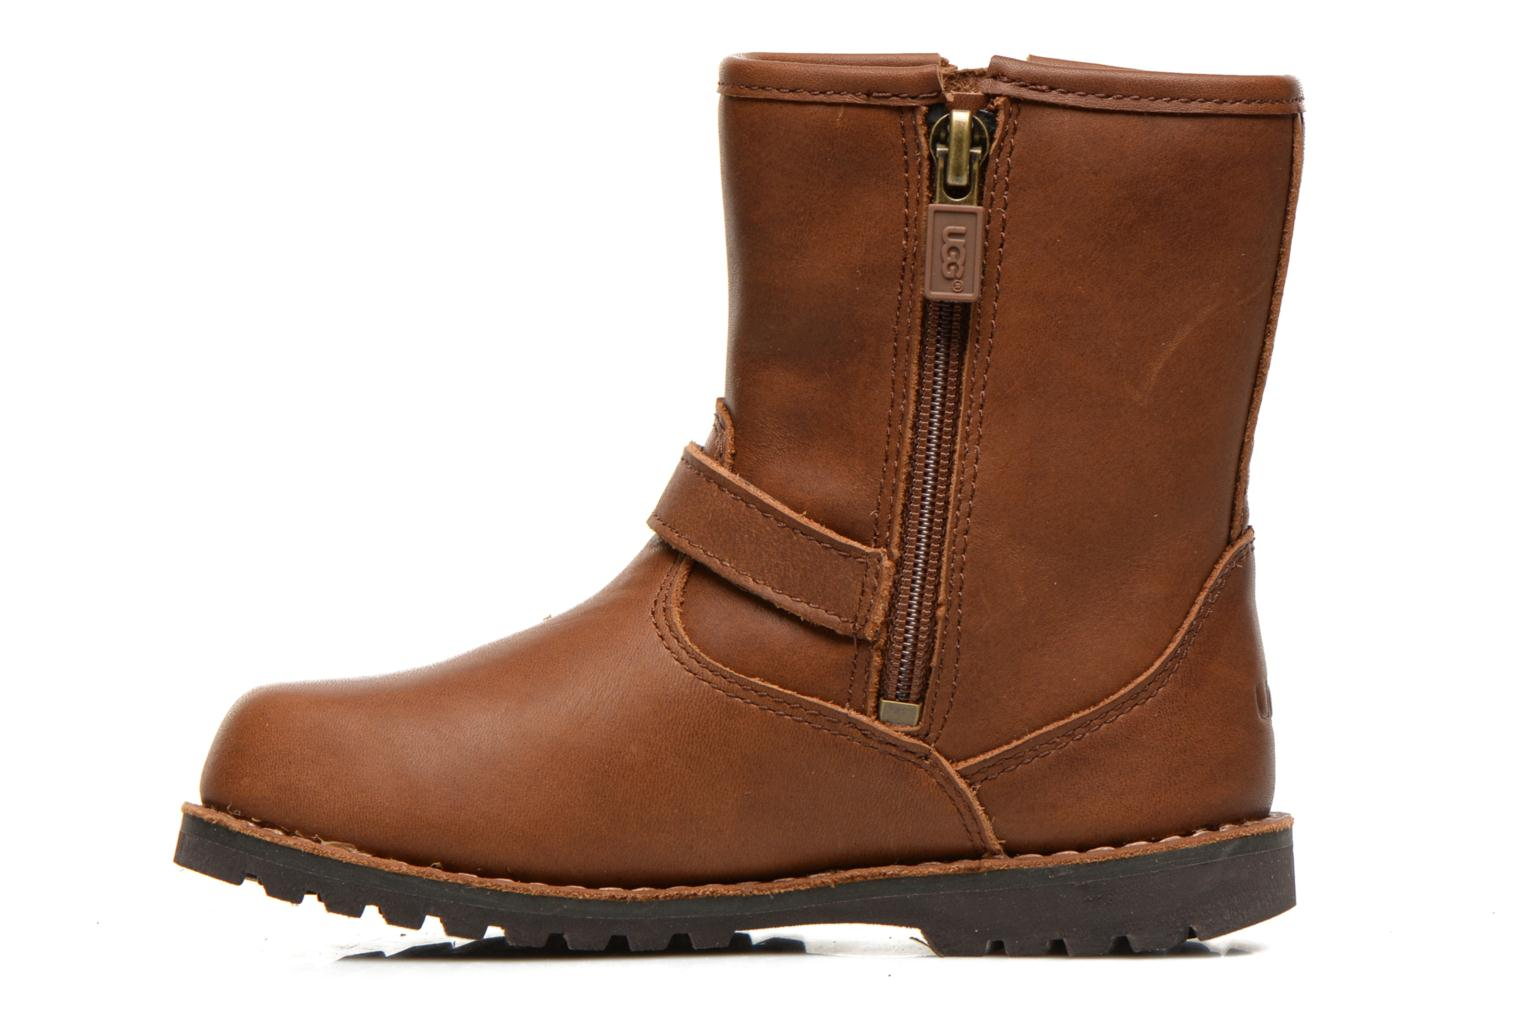 Bottines et boots UGG Harwell Marron vue face